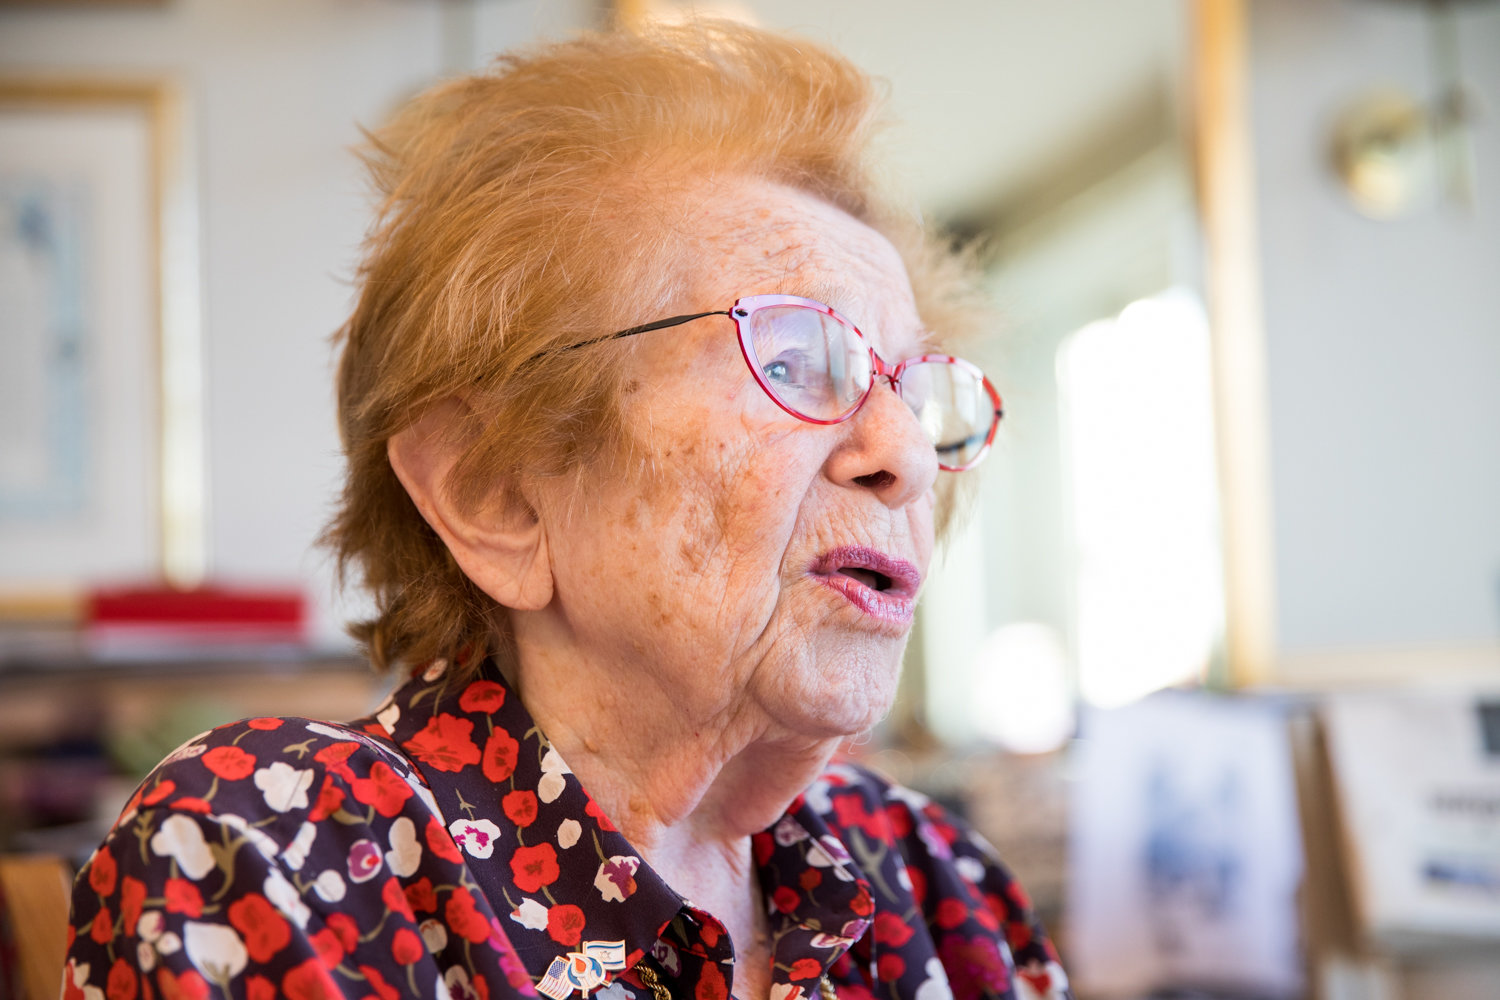 Dr. Ruth K. Westheimer talks about her life and work, and how she is raising money for a new psychology scholarship at American Associates Ben-Gurion University of the Negev in Israel, which will also award her this May with an honorary doctorate.